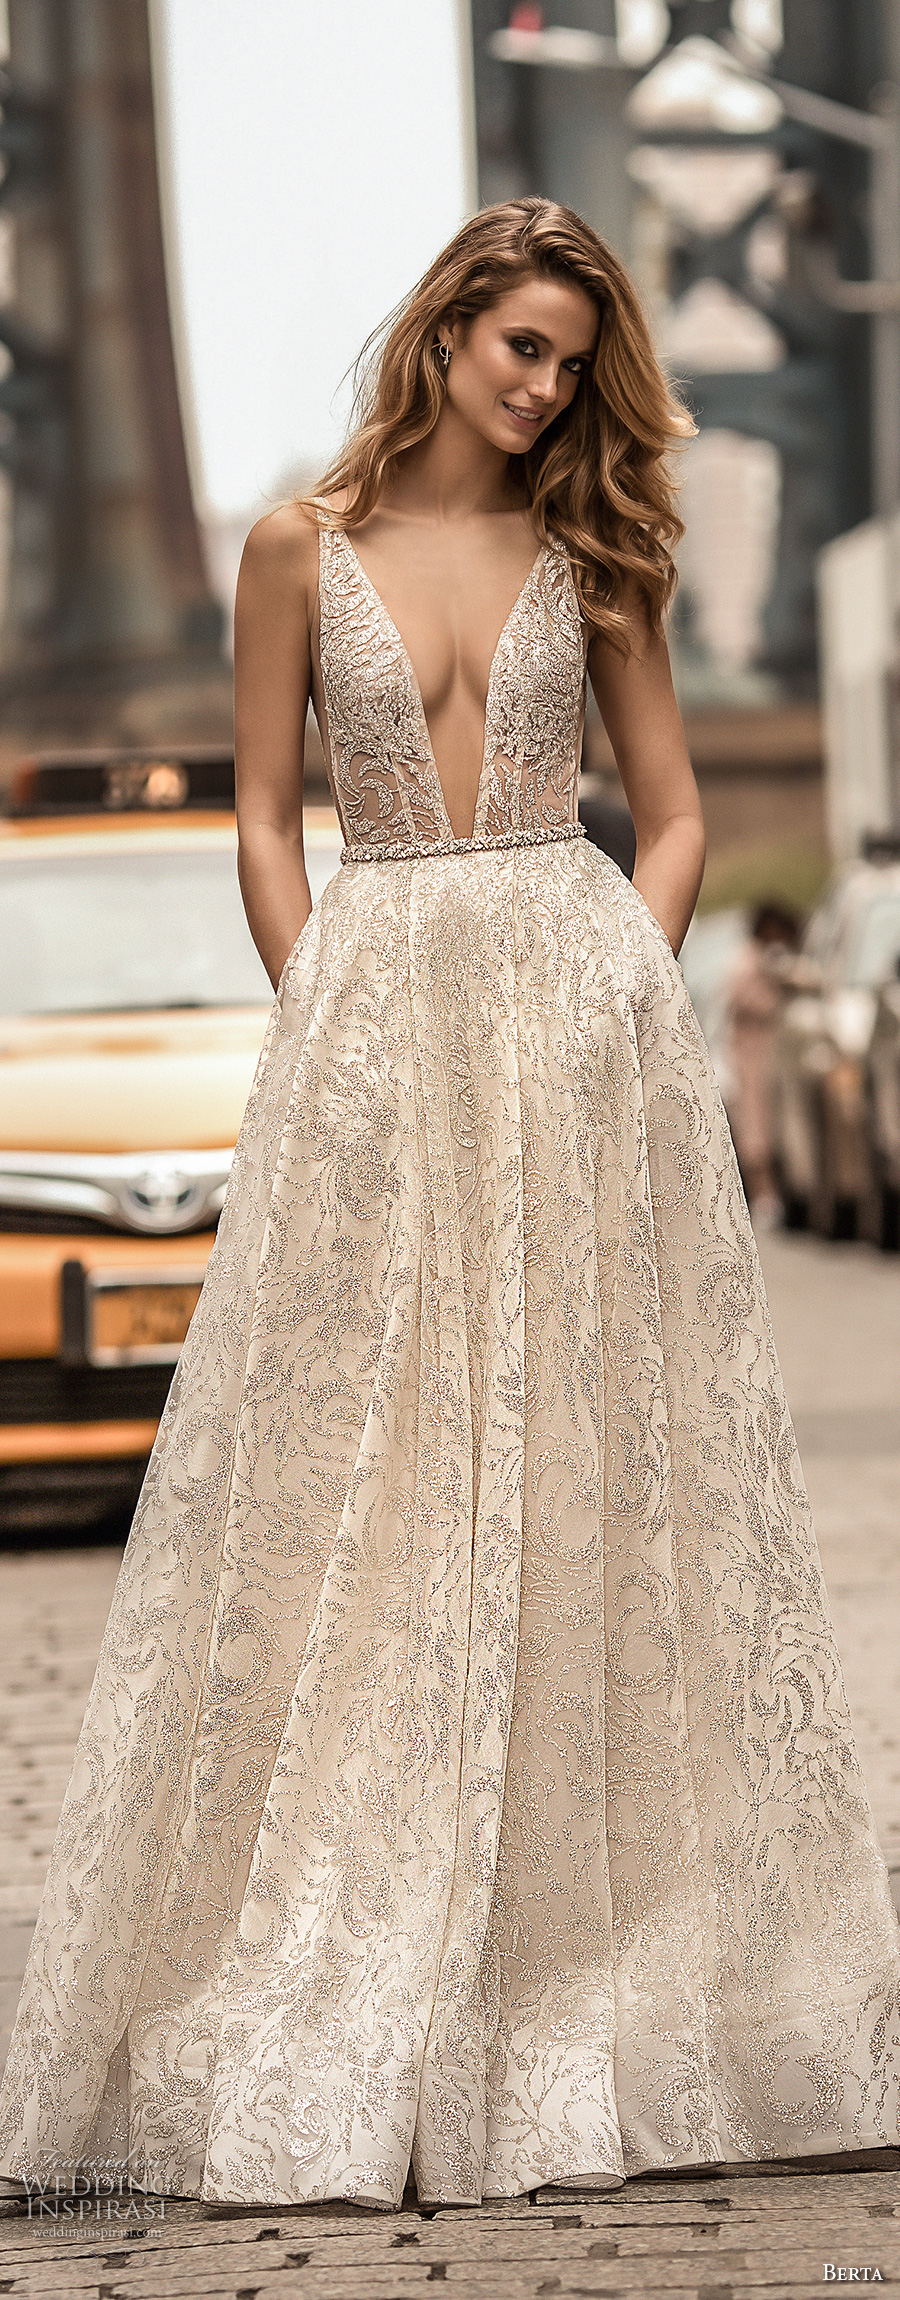 berta spring 2018 bridal sleeveless deep plunging v neck full embellishment sexy romantic a line wedding dress pockets open scoop back chapel train (4) mv